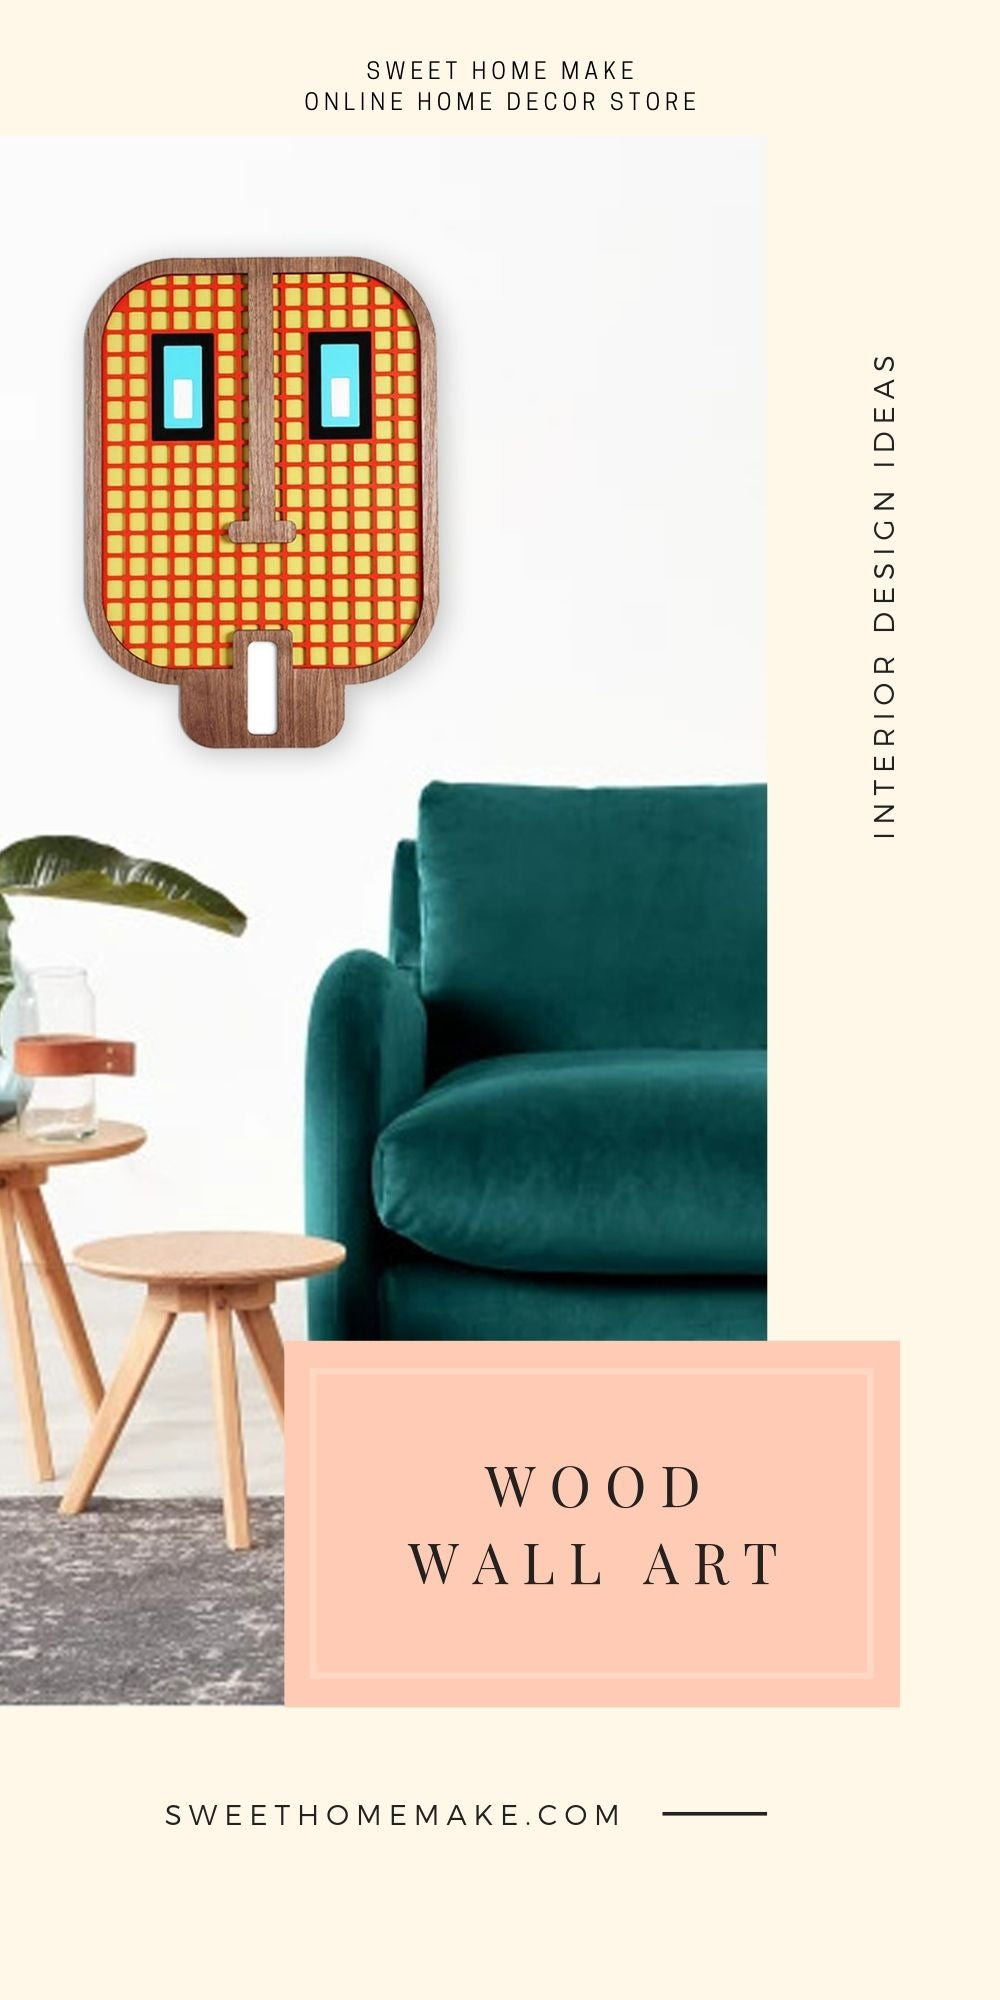 Emoji Wall Decor with Wood Wall Art